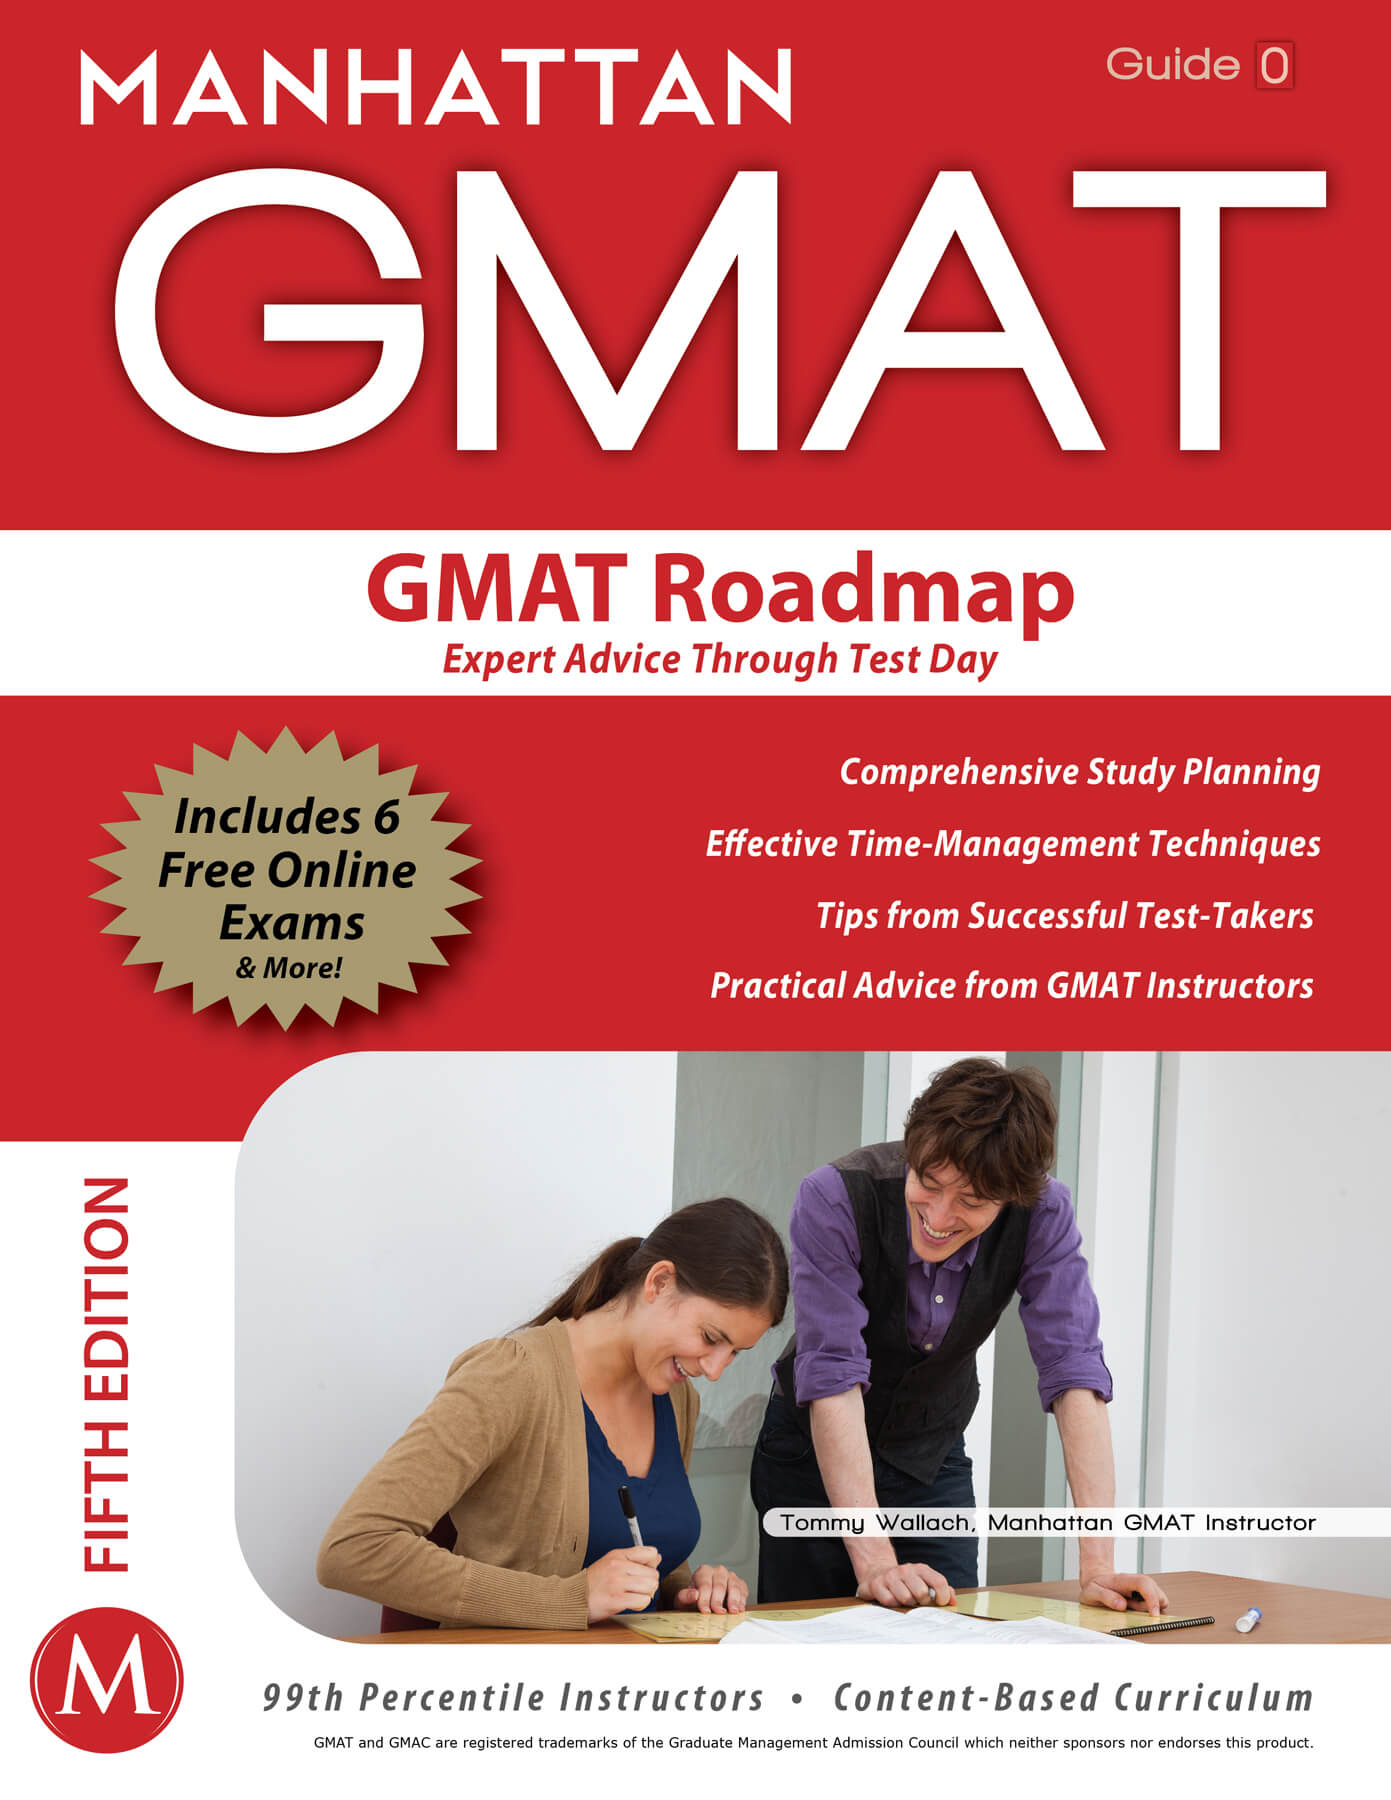 gmat roadmap cover